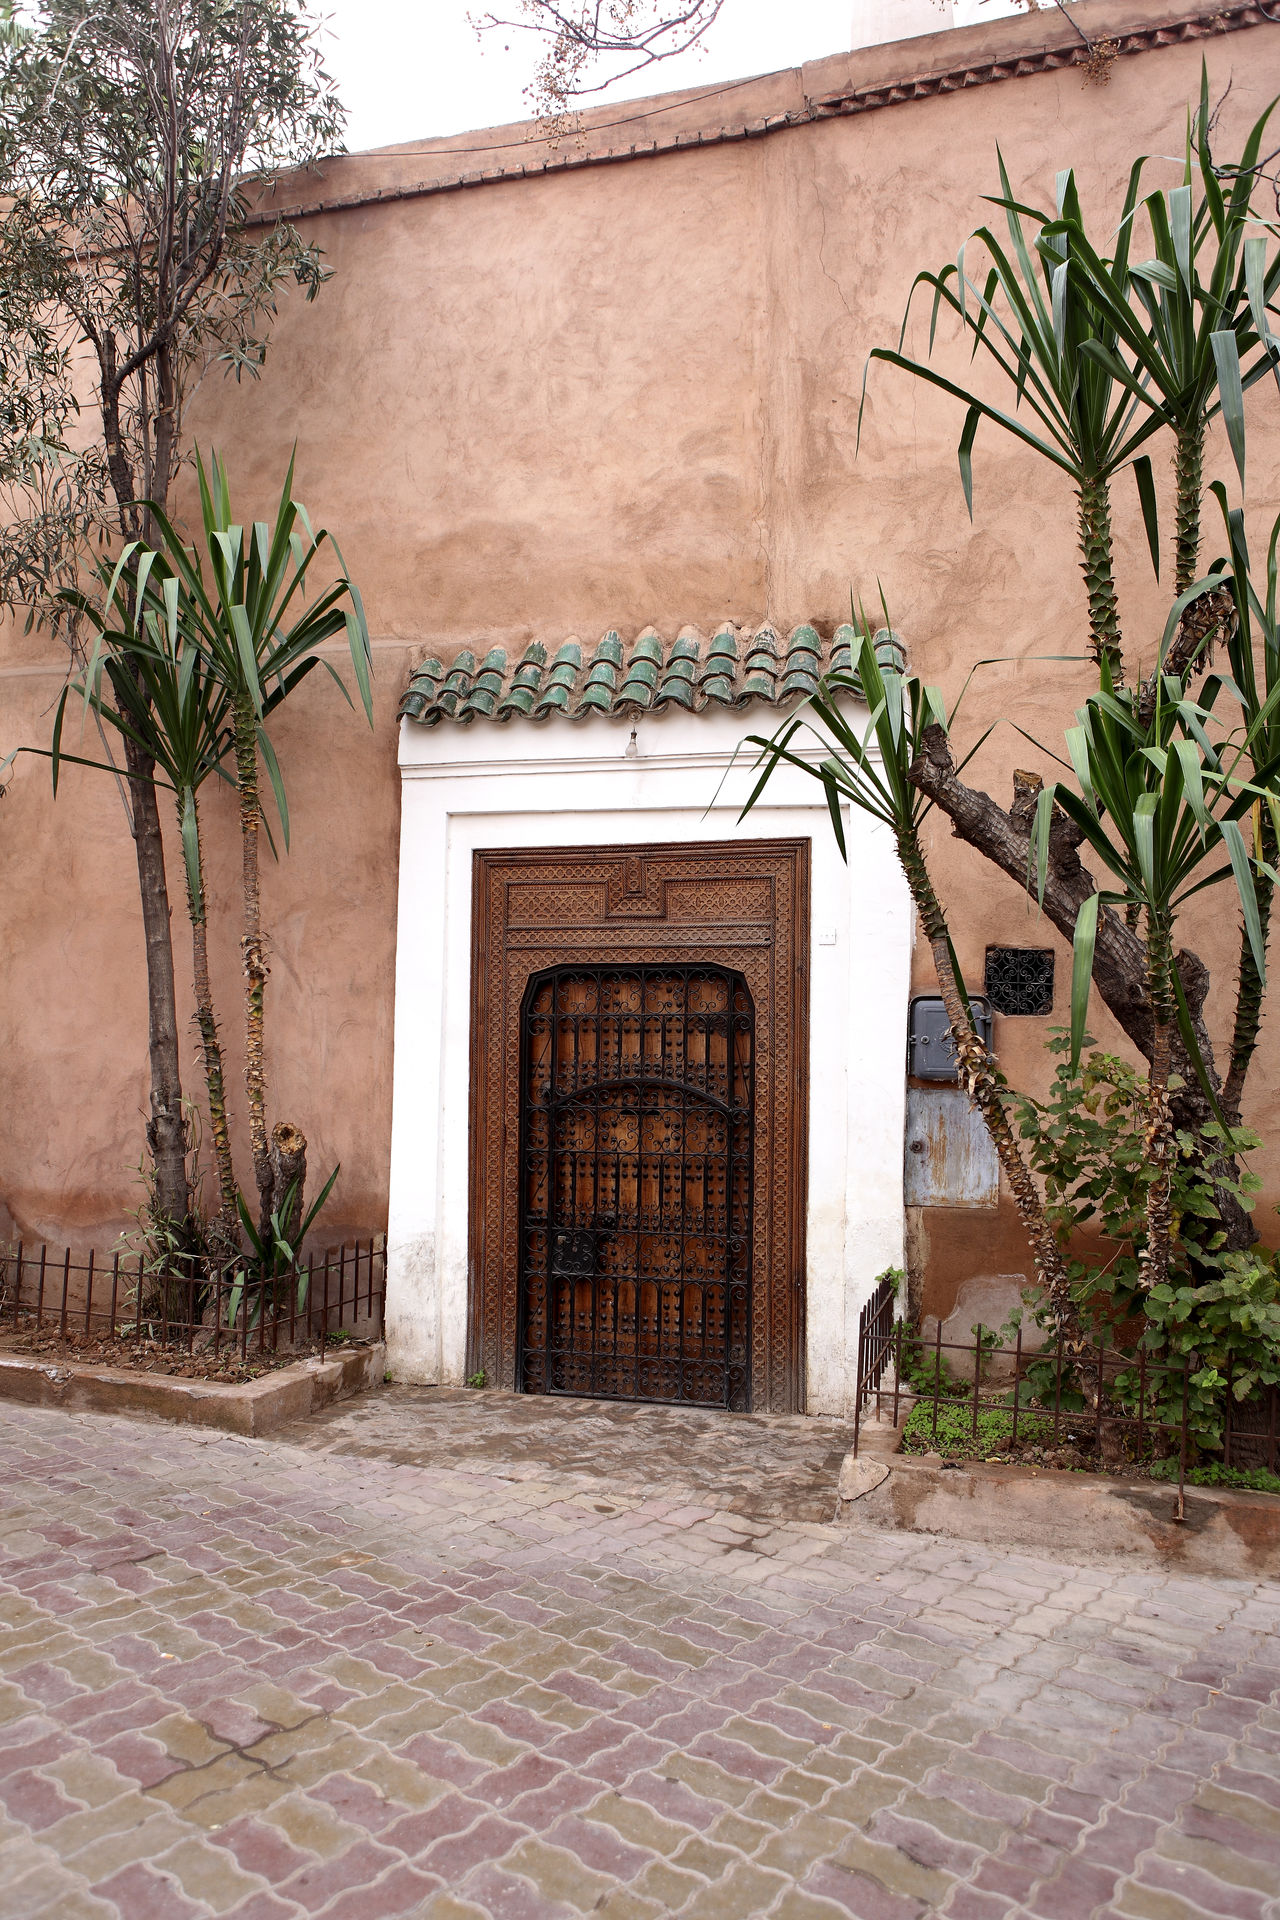 Architecture Building Exterior Built Structure Day Door Entrance Marrakech Marrakech Morocco Morocco MoroccoTrip No People Olive Tree Outdoors Palm Tree Plant Travel Travel Destinations Travel Photography Tree